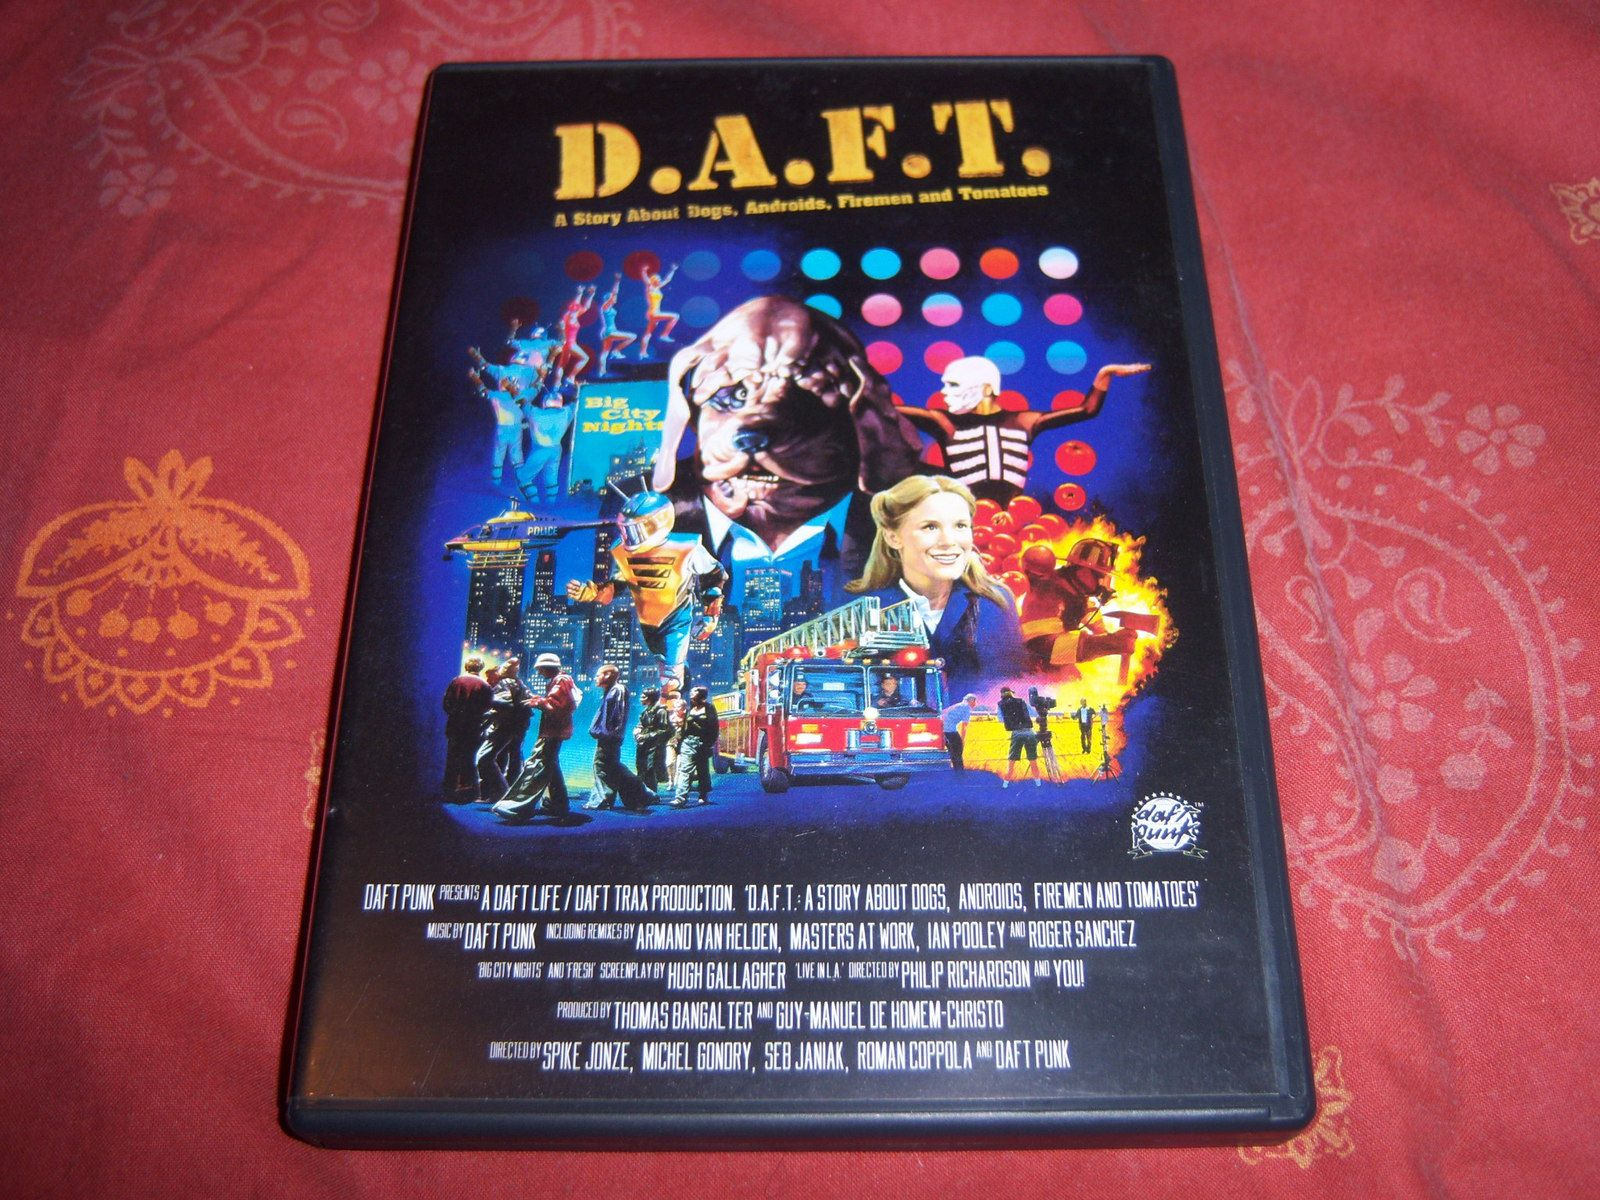 D.A.F.T. A story about Dogs, Androids, Firemen and Tomatoes – Daft Punk